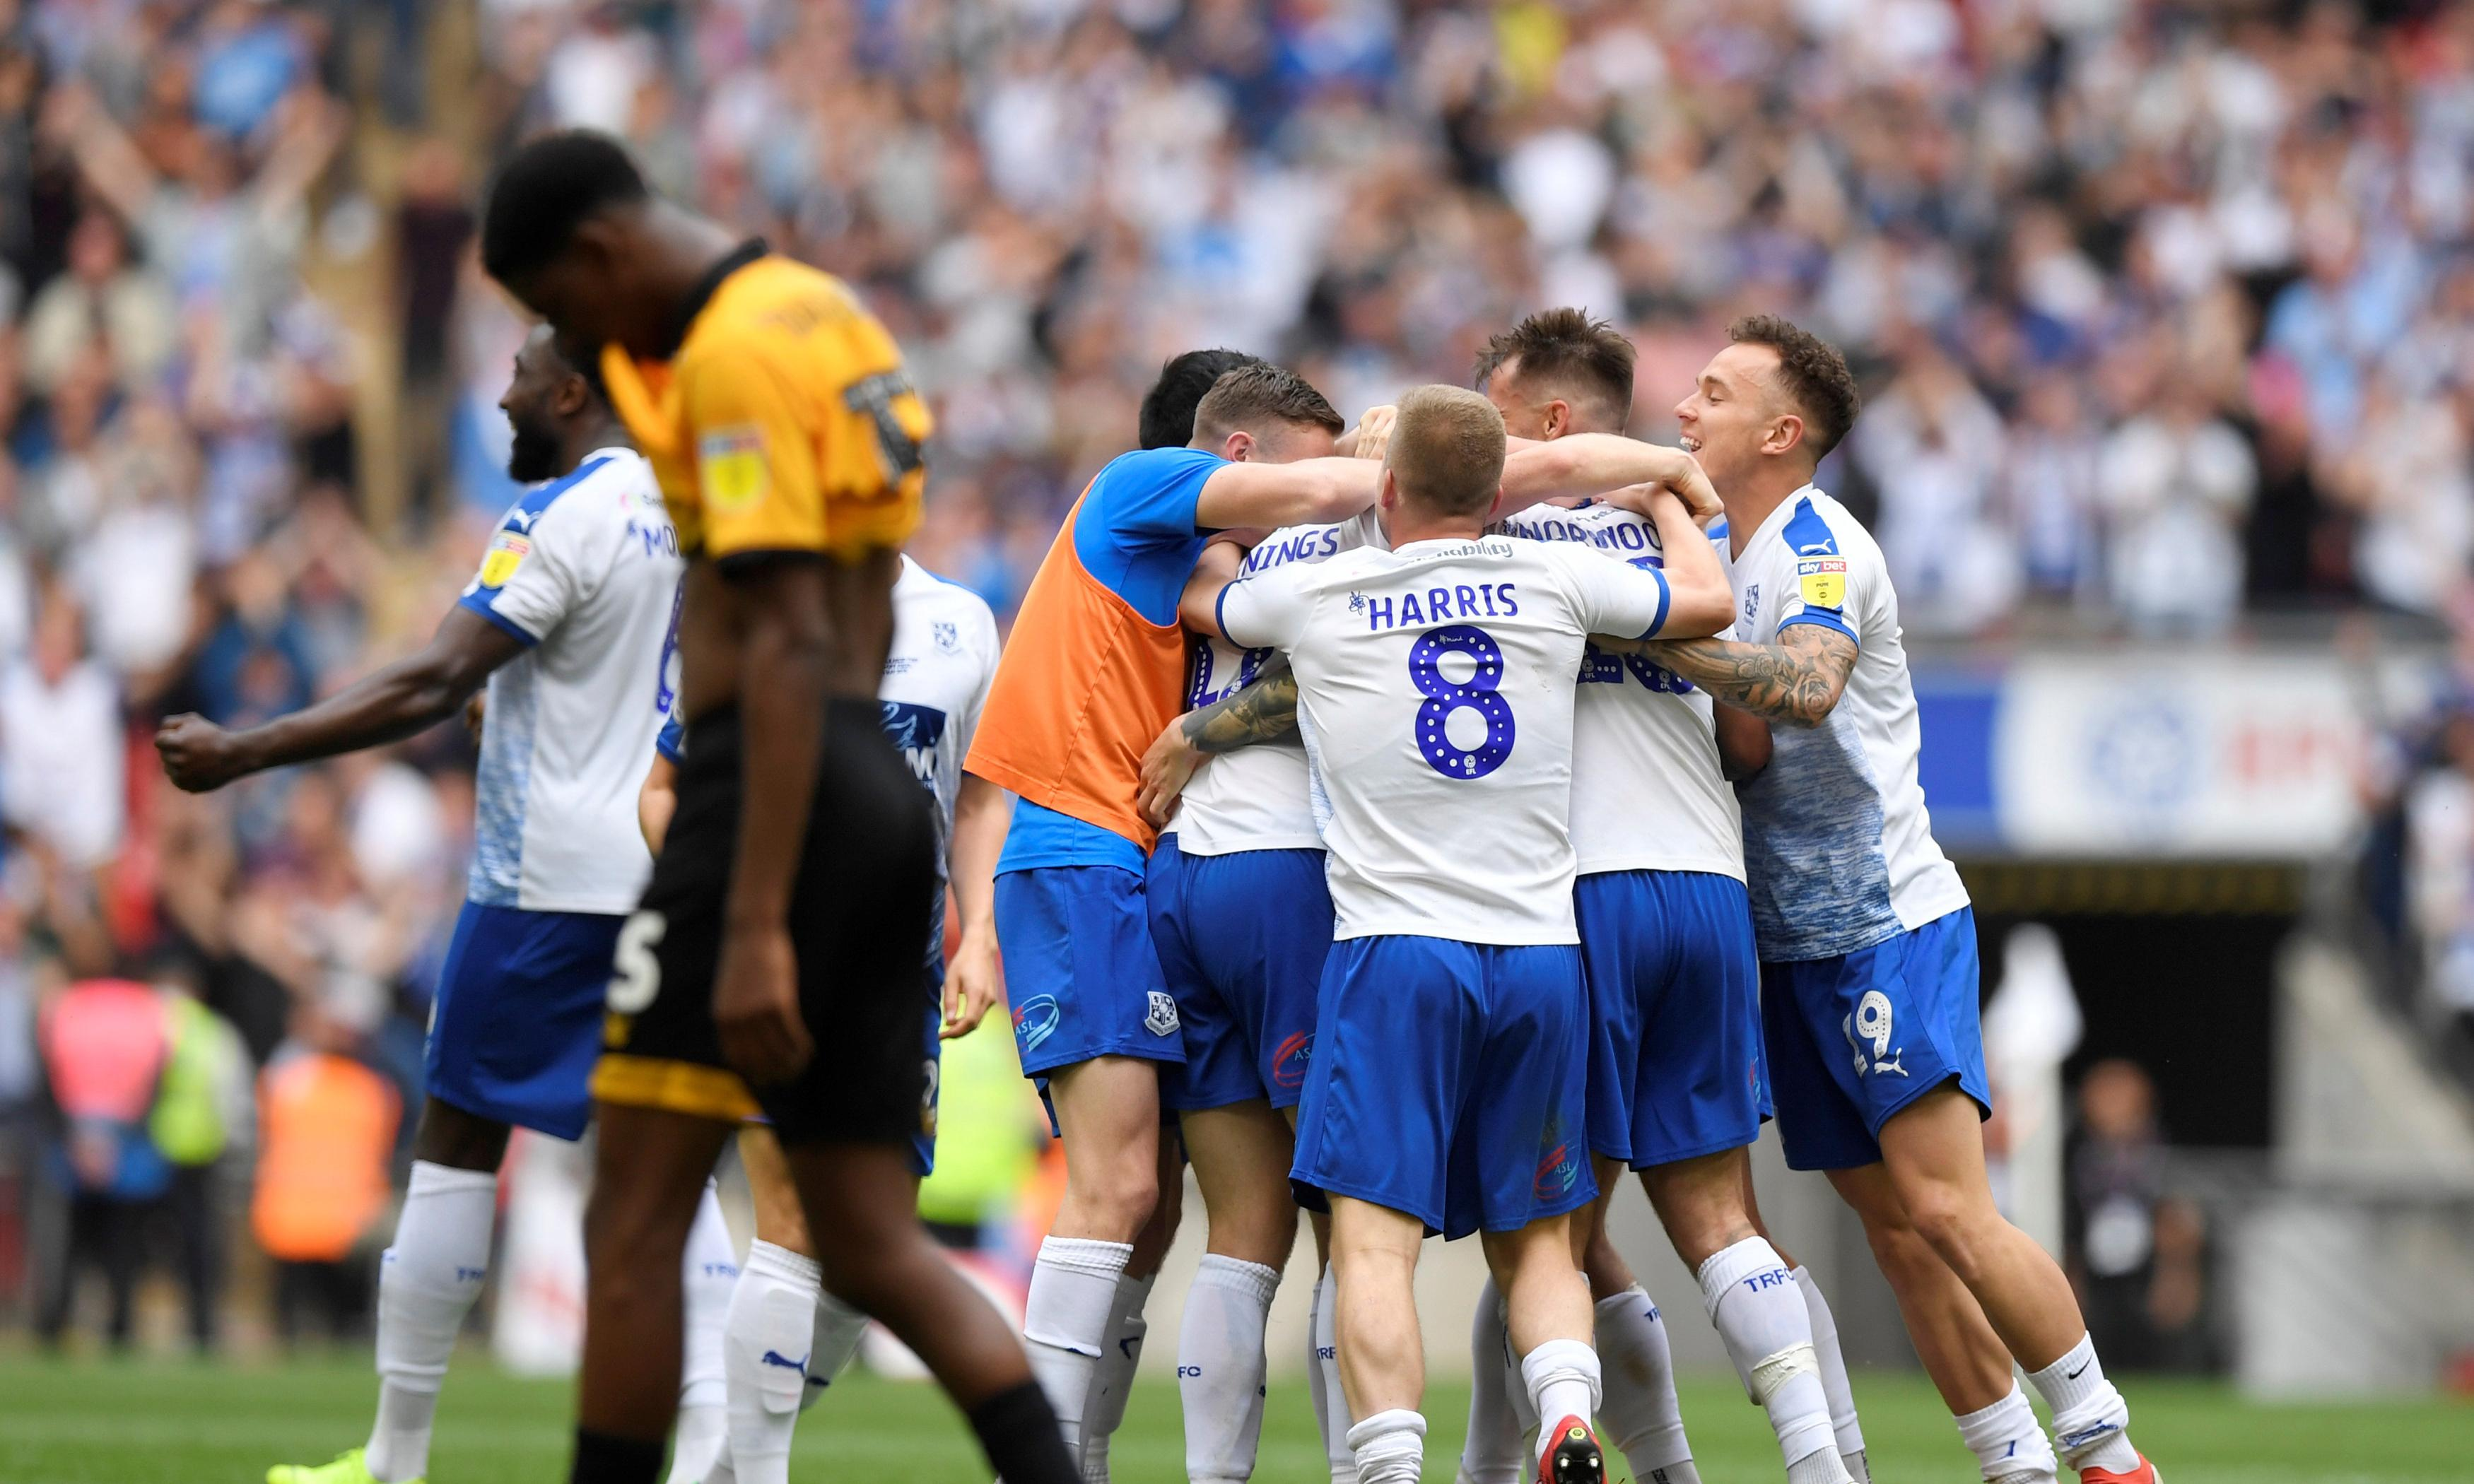 Connor Jennings heads Tranmere into League One with extra-time winner